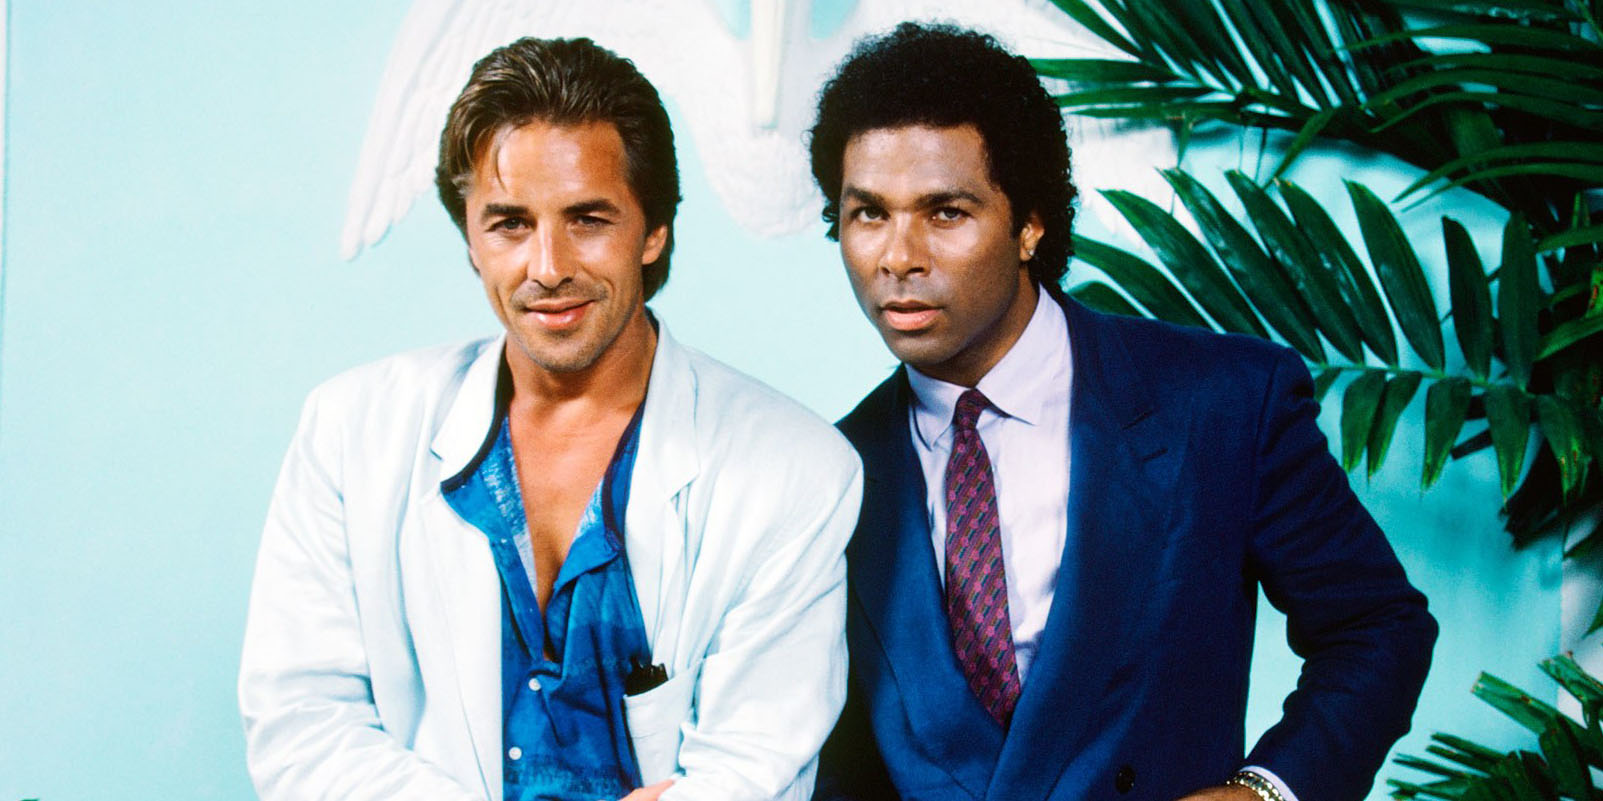 THE DOC(MANHATTAN) IS IN – Miami Vice